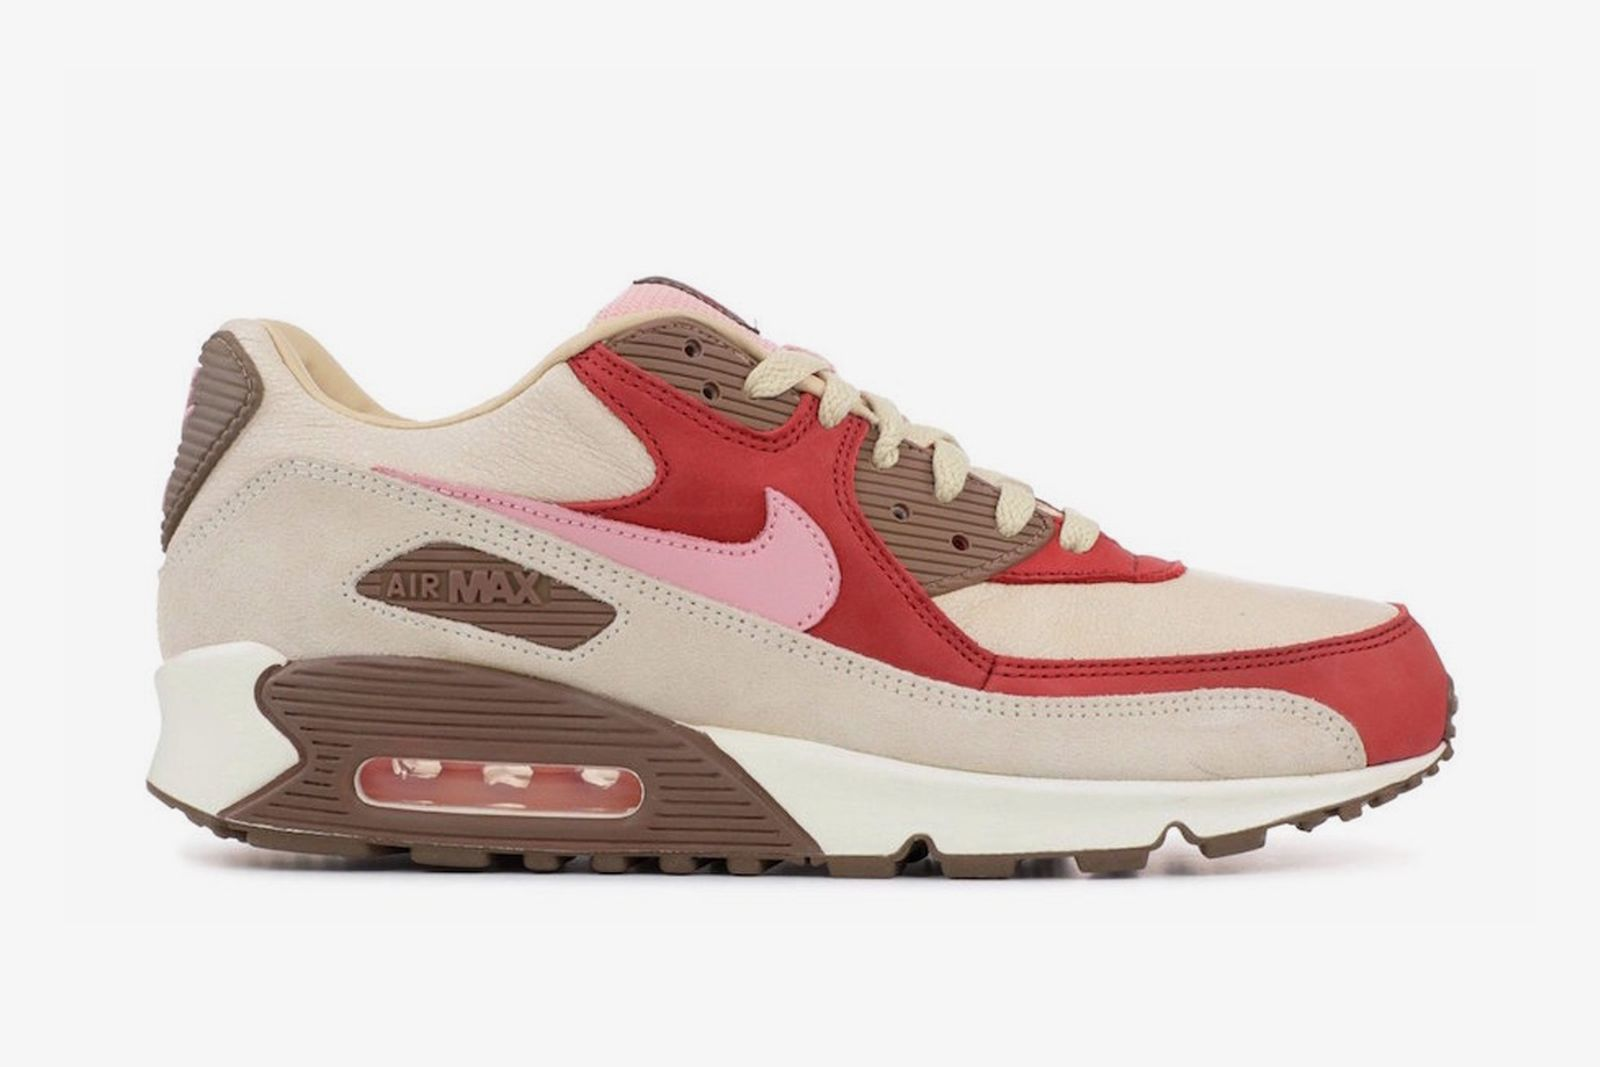 dqm-nike-air-max-90-bacon-2020-release-date-price-01